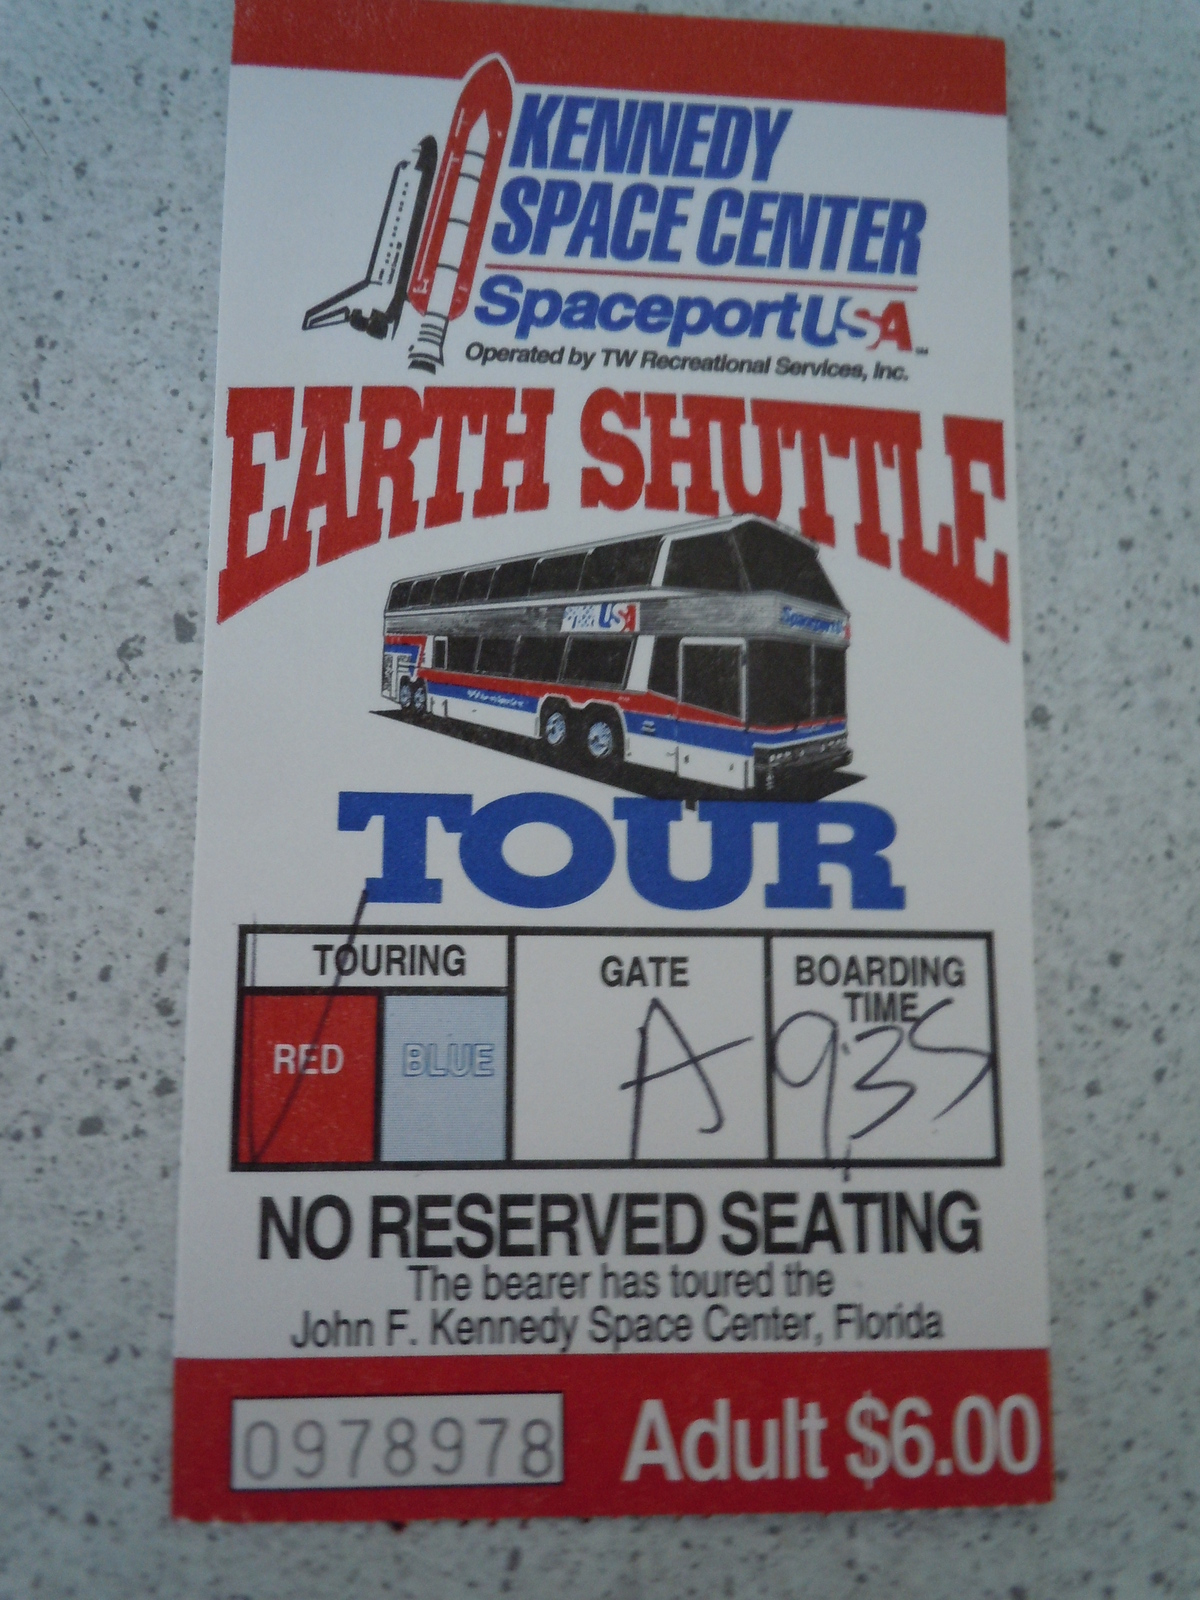 Kennedy Space Center Spaceport USA Earth Shuttle Tour Florida Used Ticket